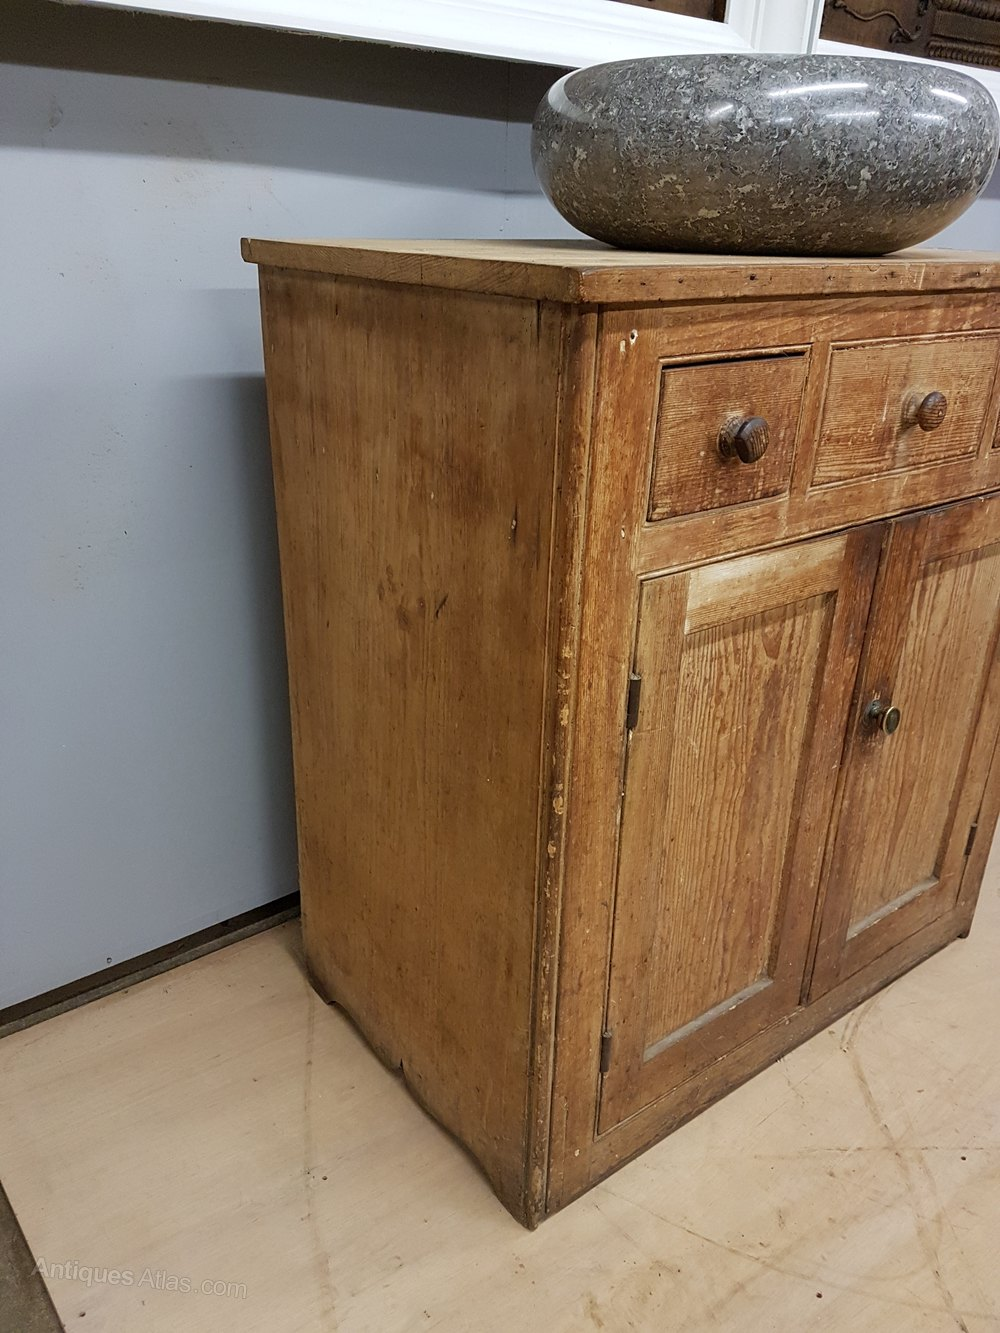 19thc pine vanity unit with carved stone sink antiques atlas for Antique stone sinks for sale